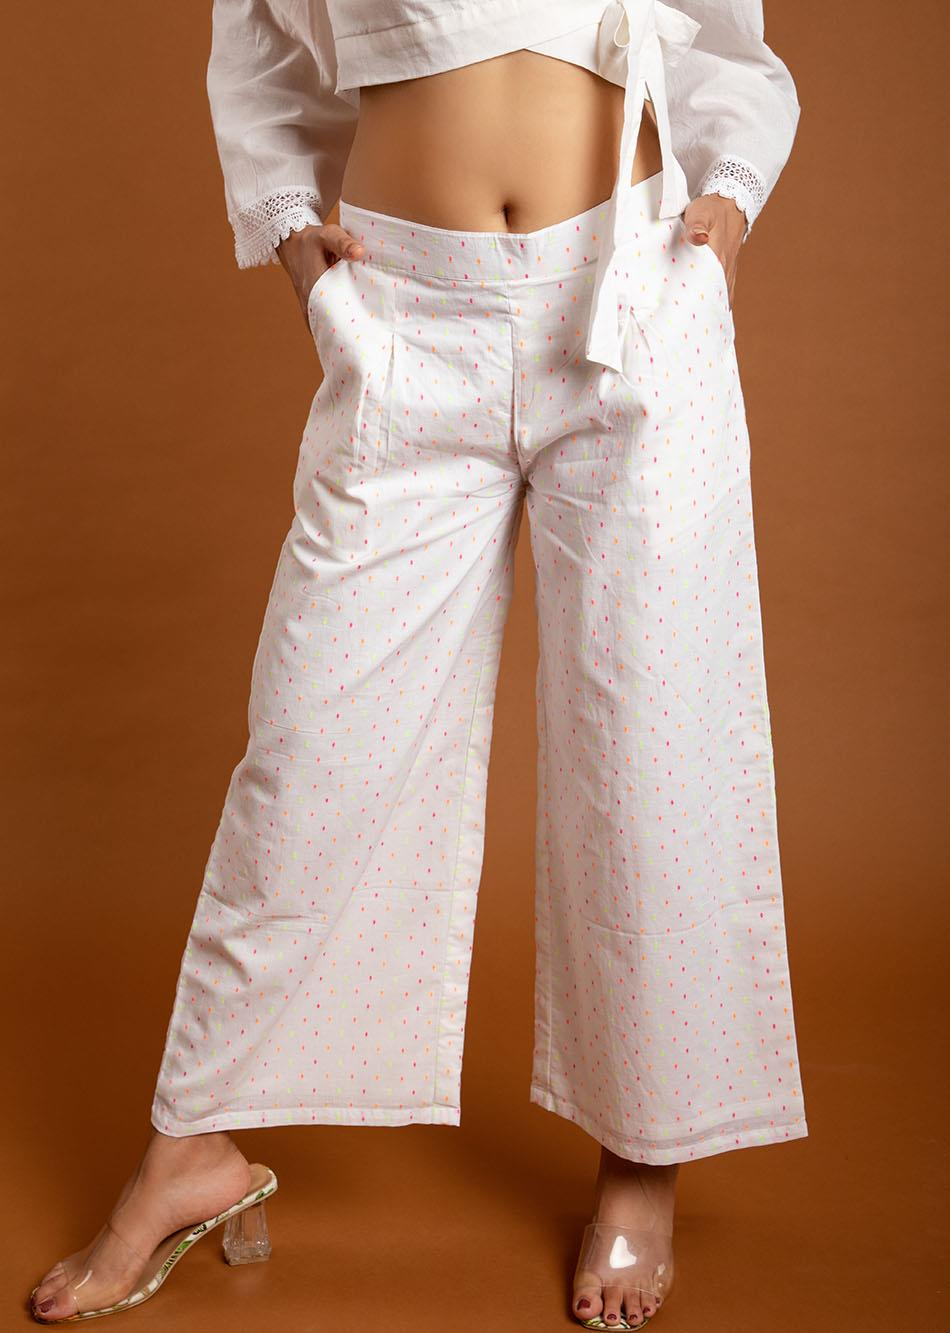 Easy white pants